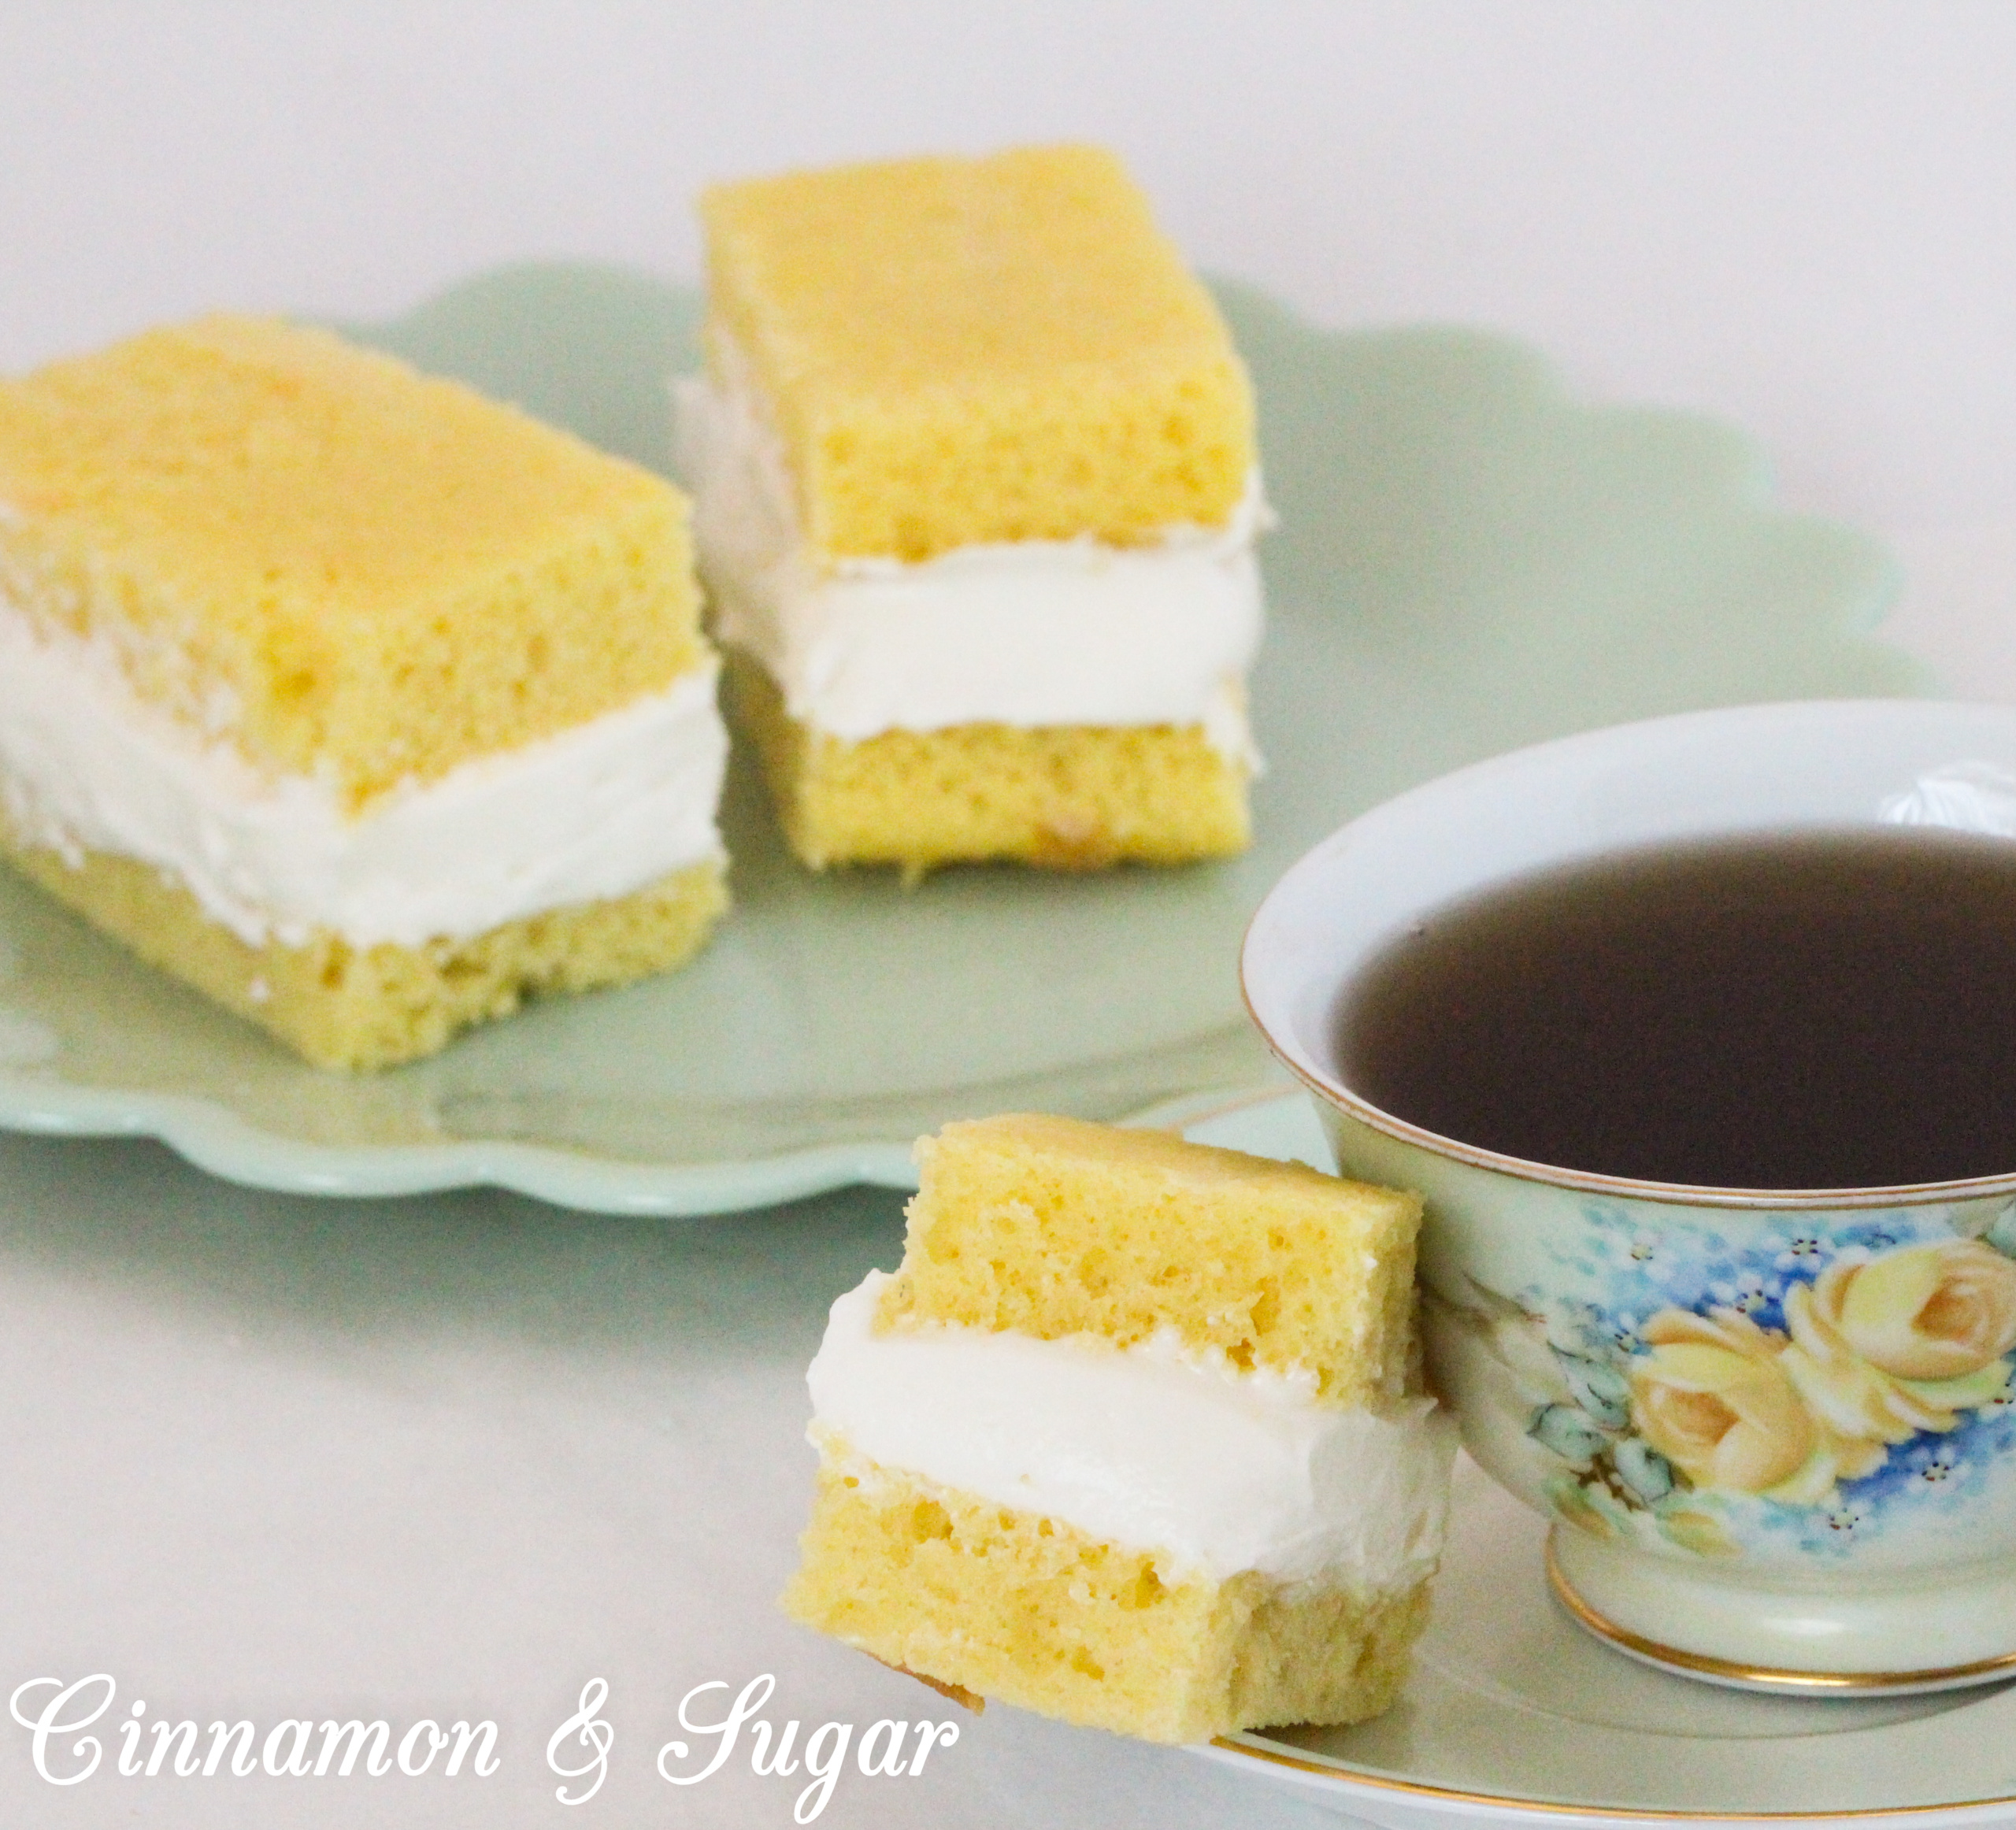 Using convenience products, these Twinkies are tender, golden cakes with a luscious creamy filling! The batch makes plenty to eat several pieces yourself and still have enough to share with family and friends! Recipe shared with permission granted by Kaye George, author of REVENGE IS SWEET.